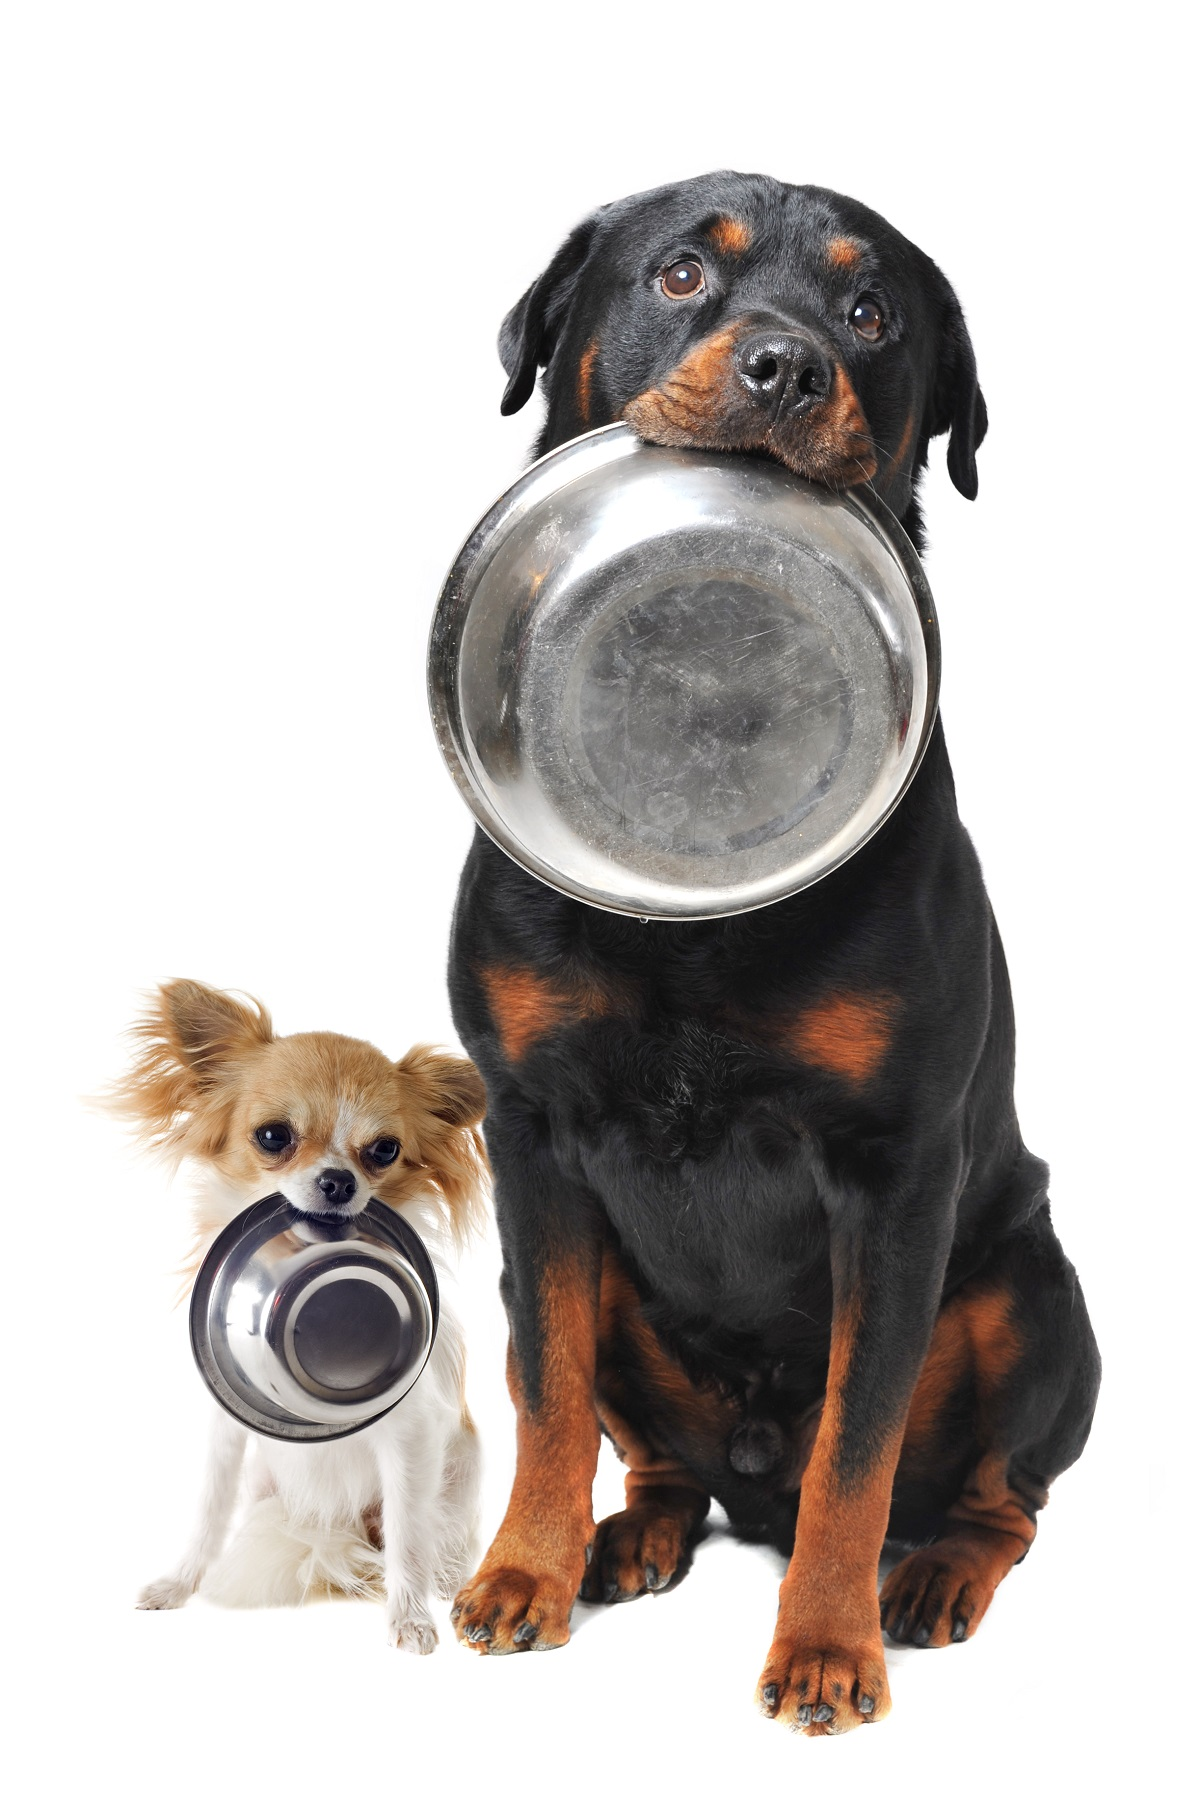 dogs with food bowls